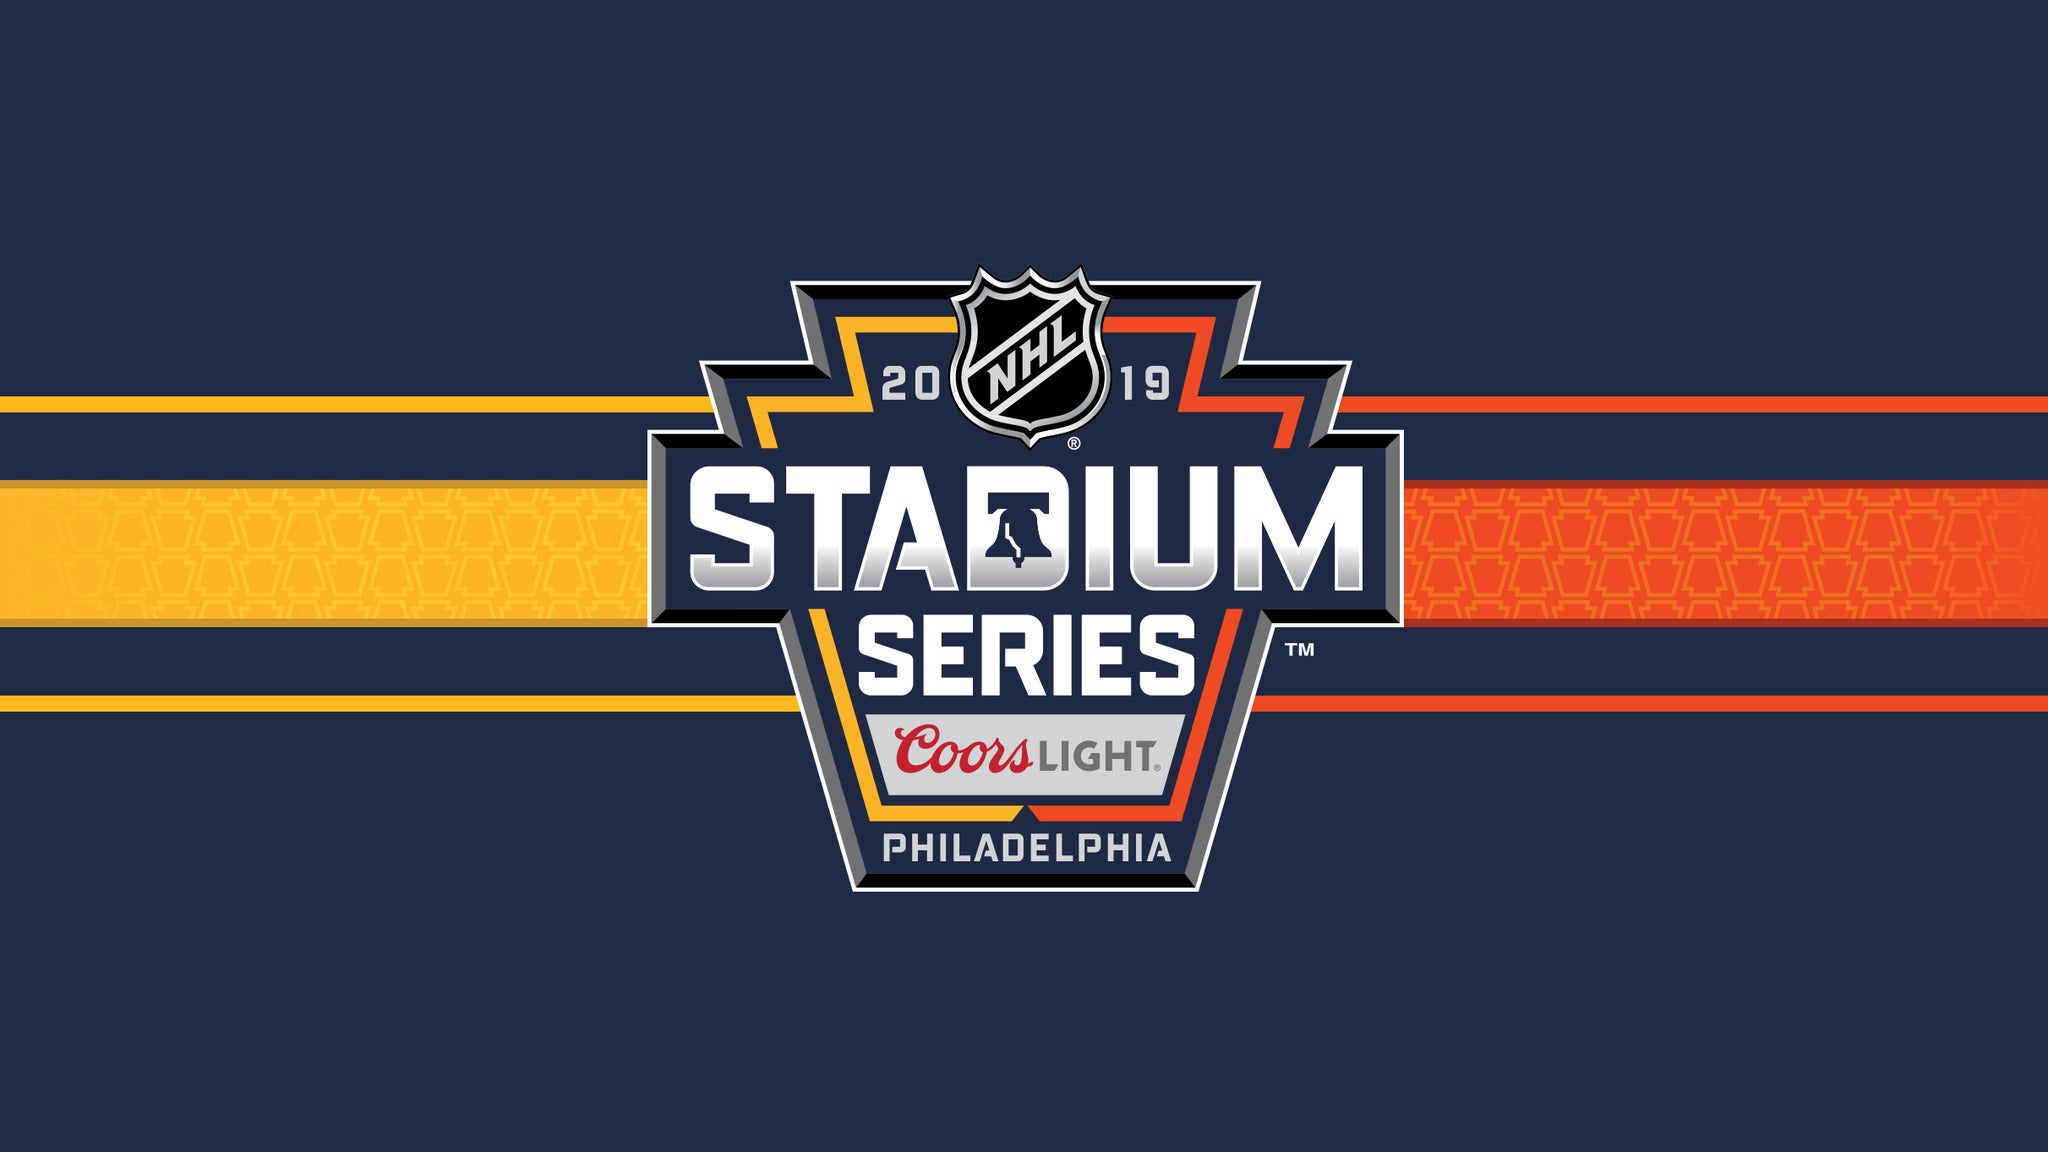 2019 Coors Light NHL Stadium Series- Penguins v. Flyers